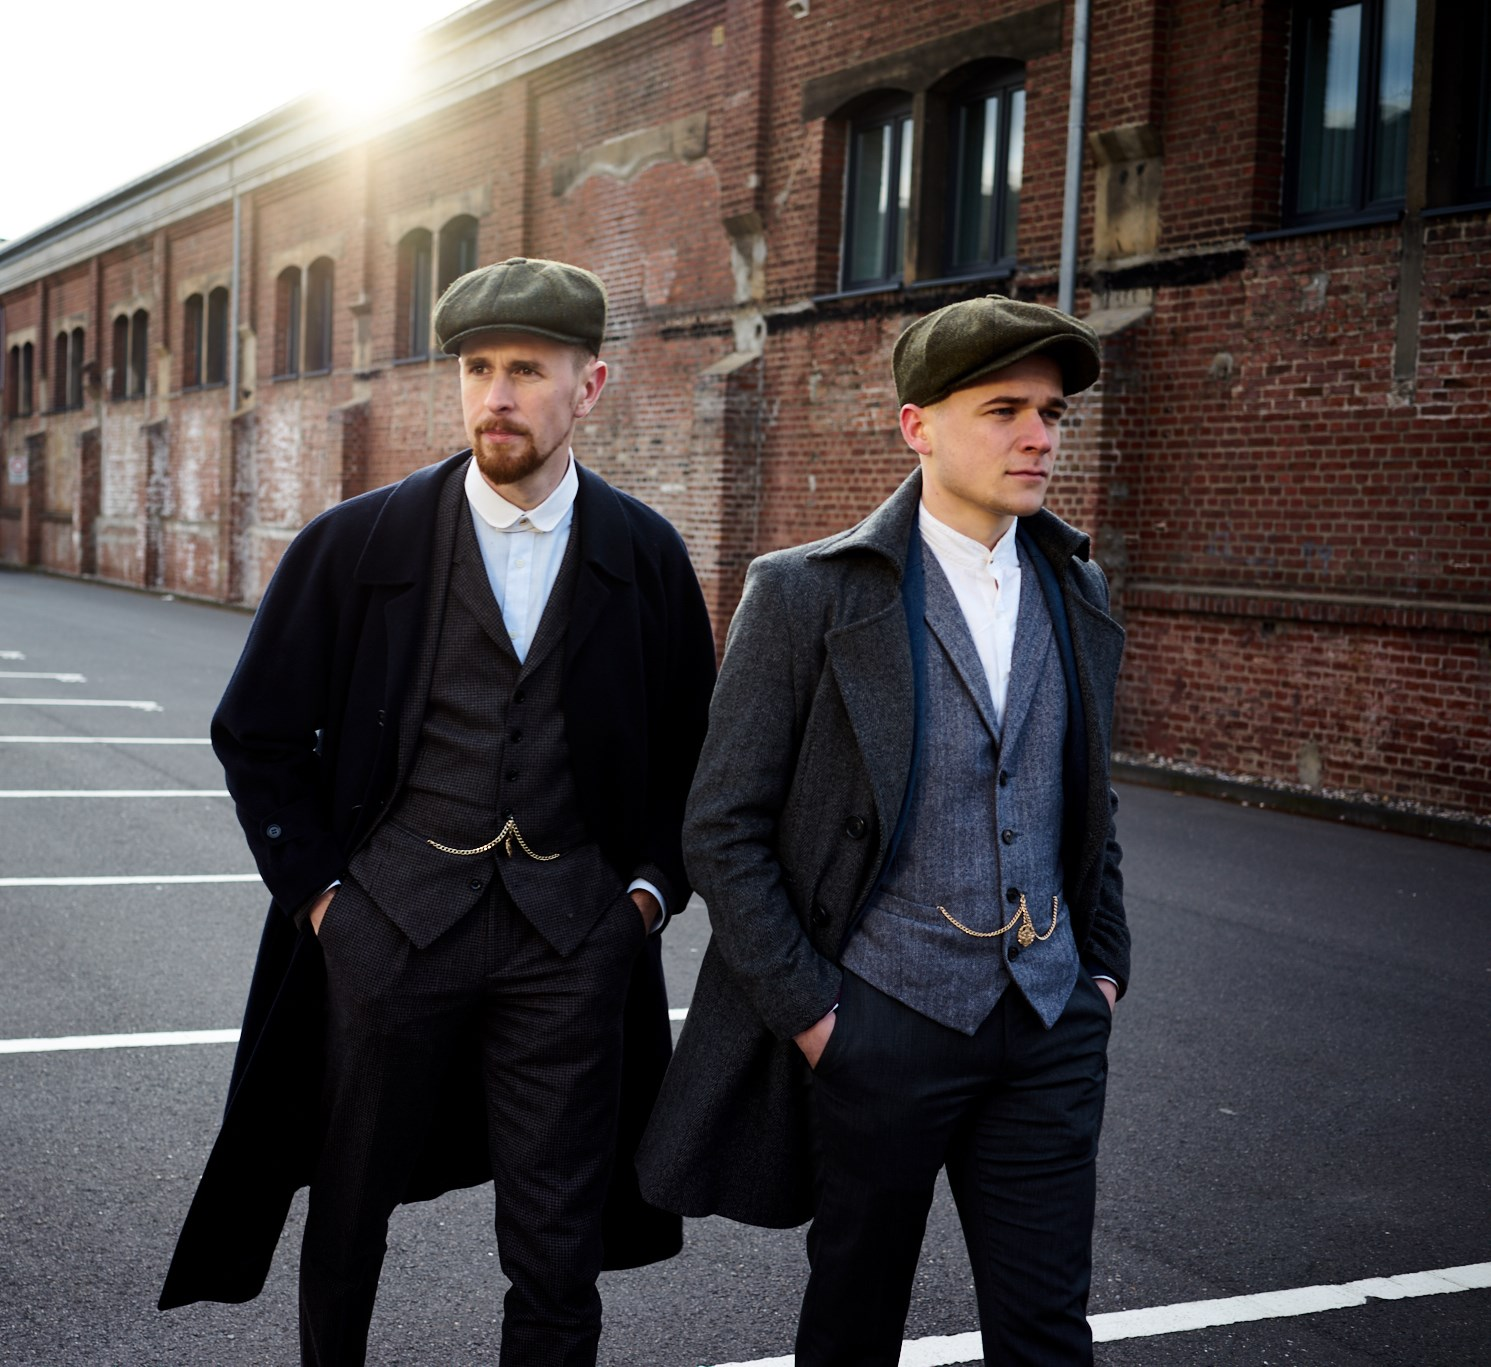 das peaky blinders outfit der style der shelby br der. Black Bedroom Furniture Sets. Home Design Ideas